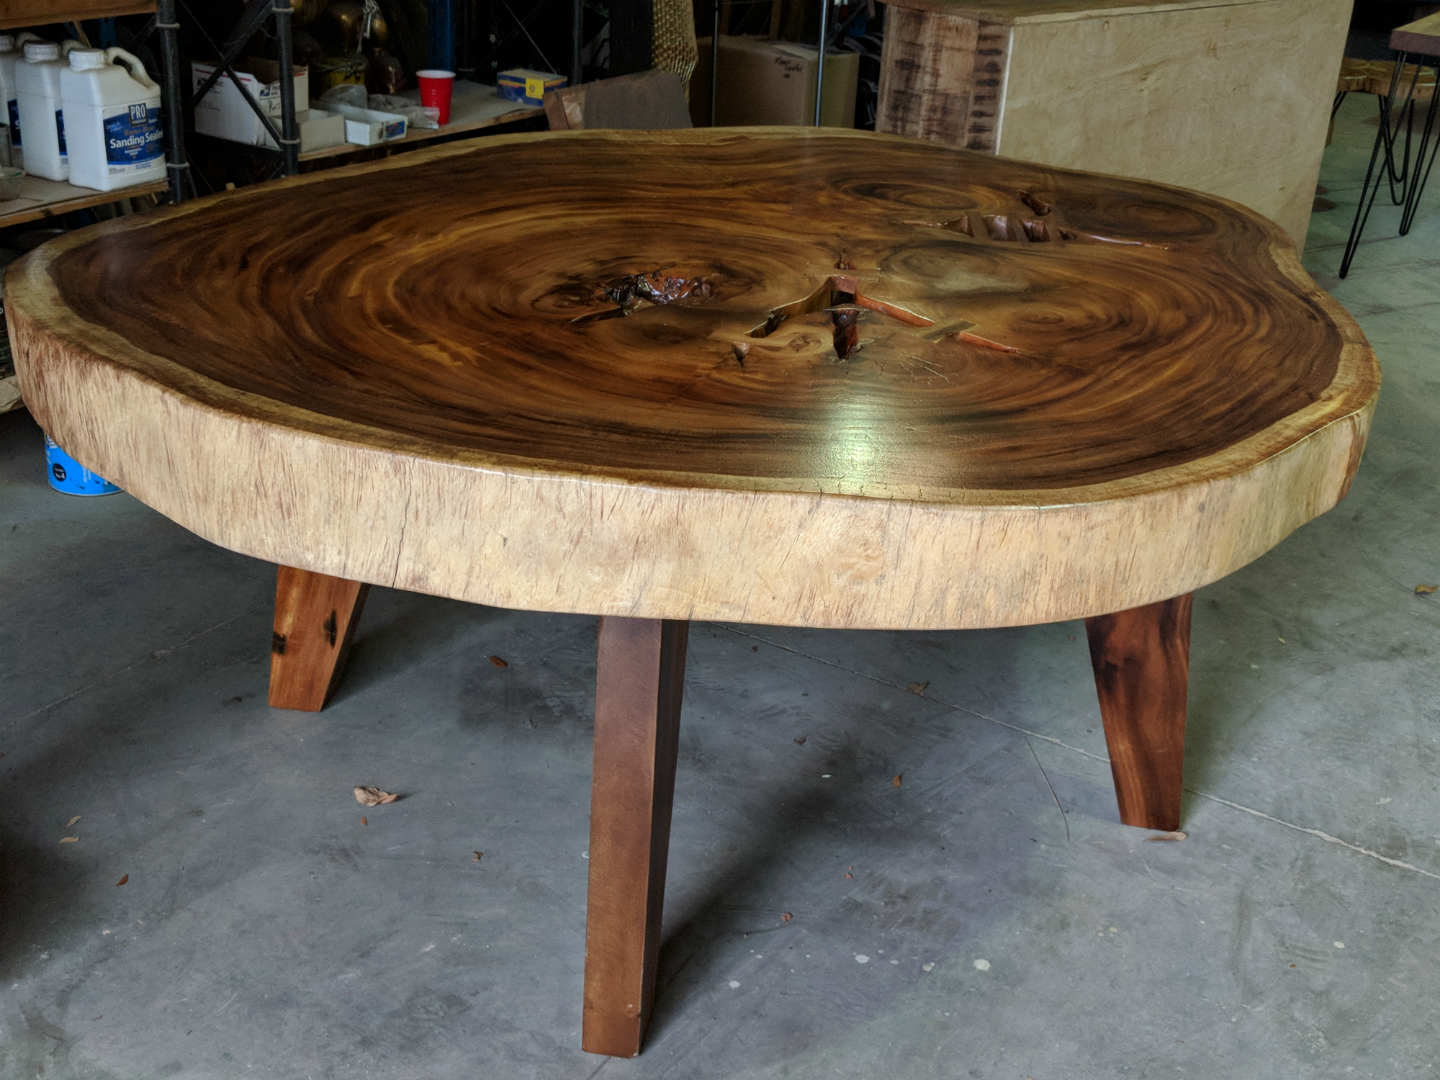 round slab dining tables decor direct whole live edge accent table brown you find just the right already finished and ready otherwise can choose your own wood slabs style them for